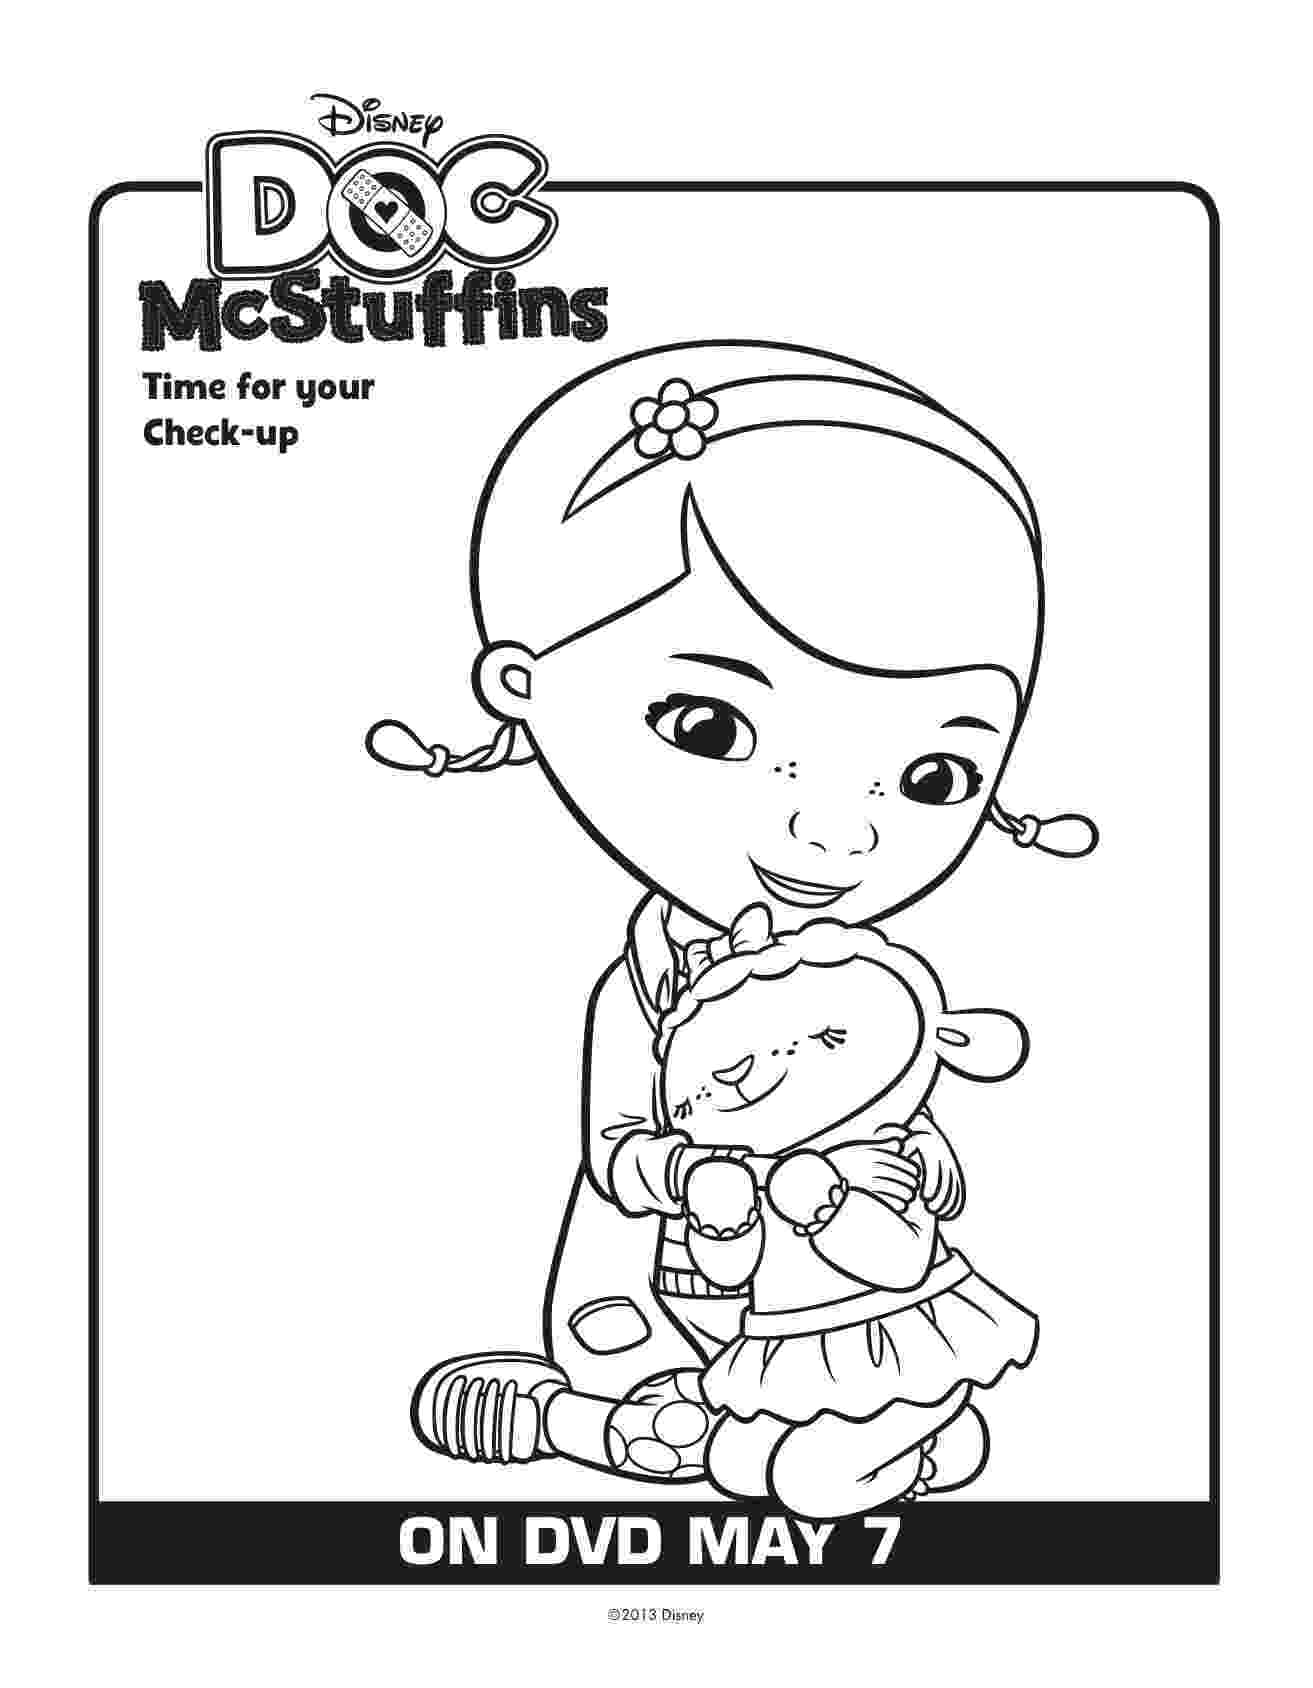 doc mcstuffins printable coloring pages free doc mcstuffins printables download here lady and pages doc mcstuffins printable coloring